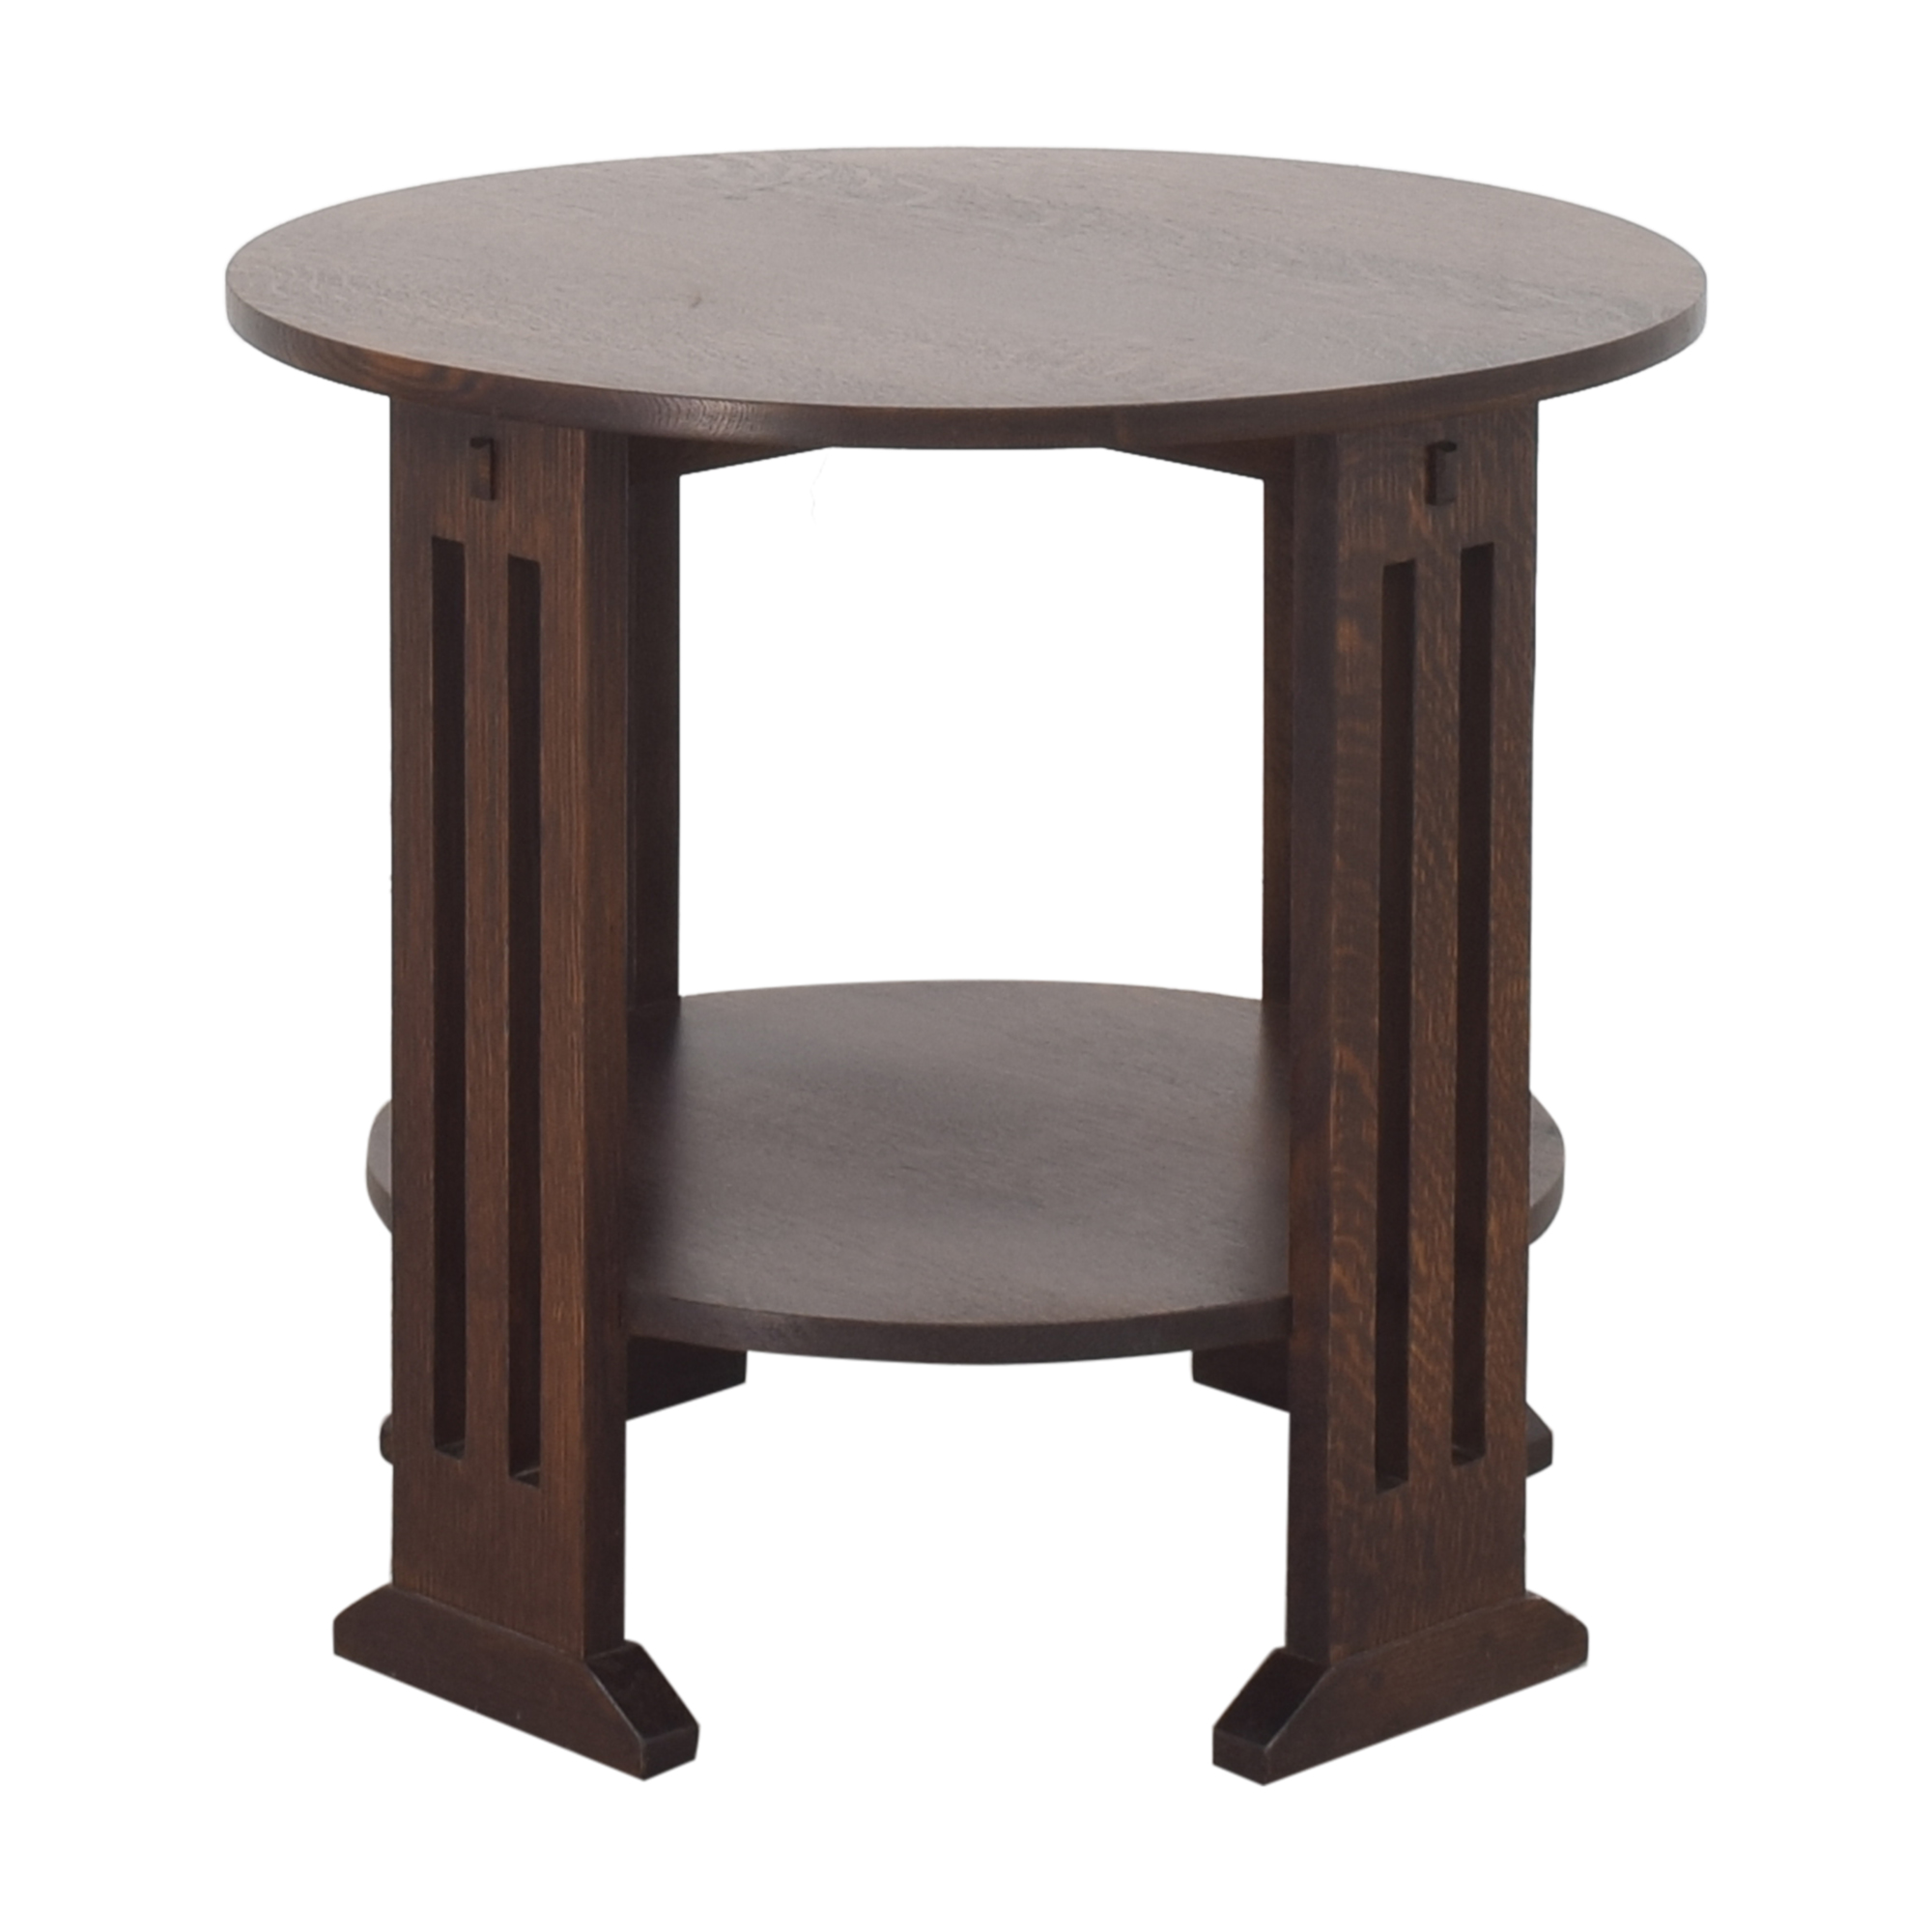 Stickley Furniture Stickley Furniture Round End Table price